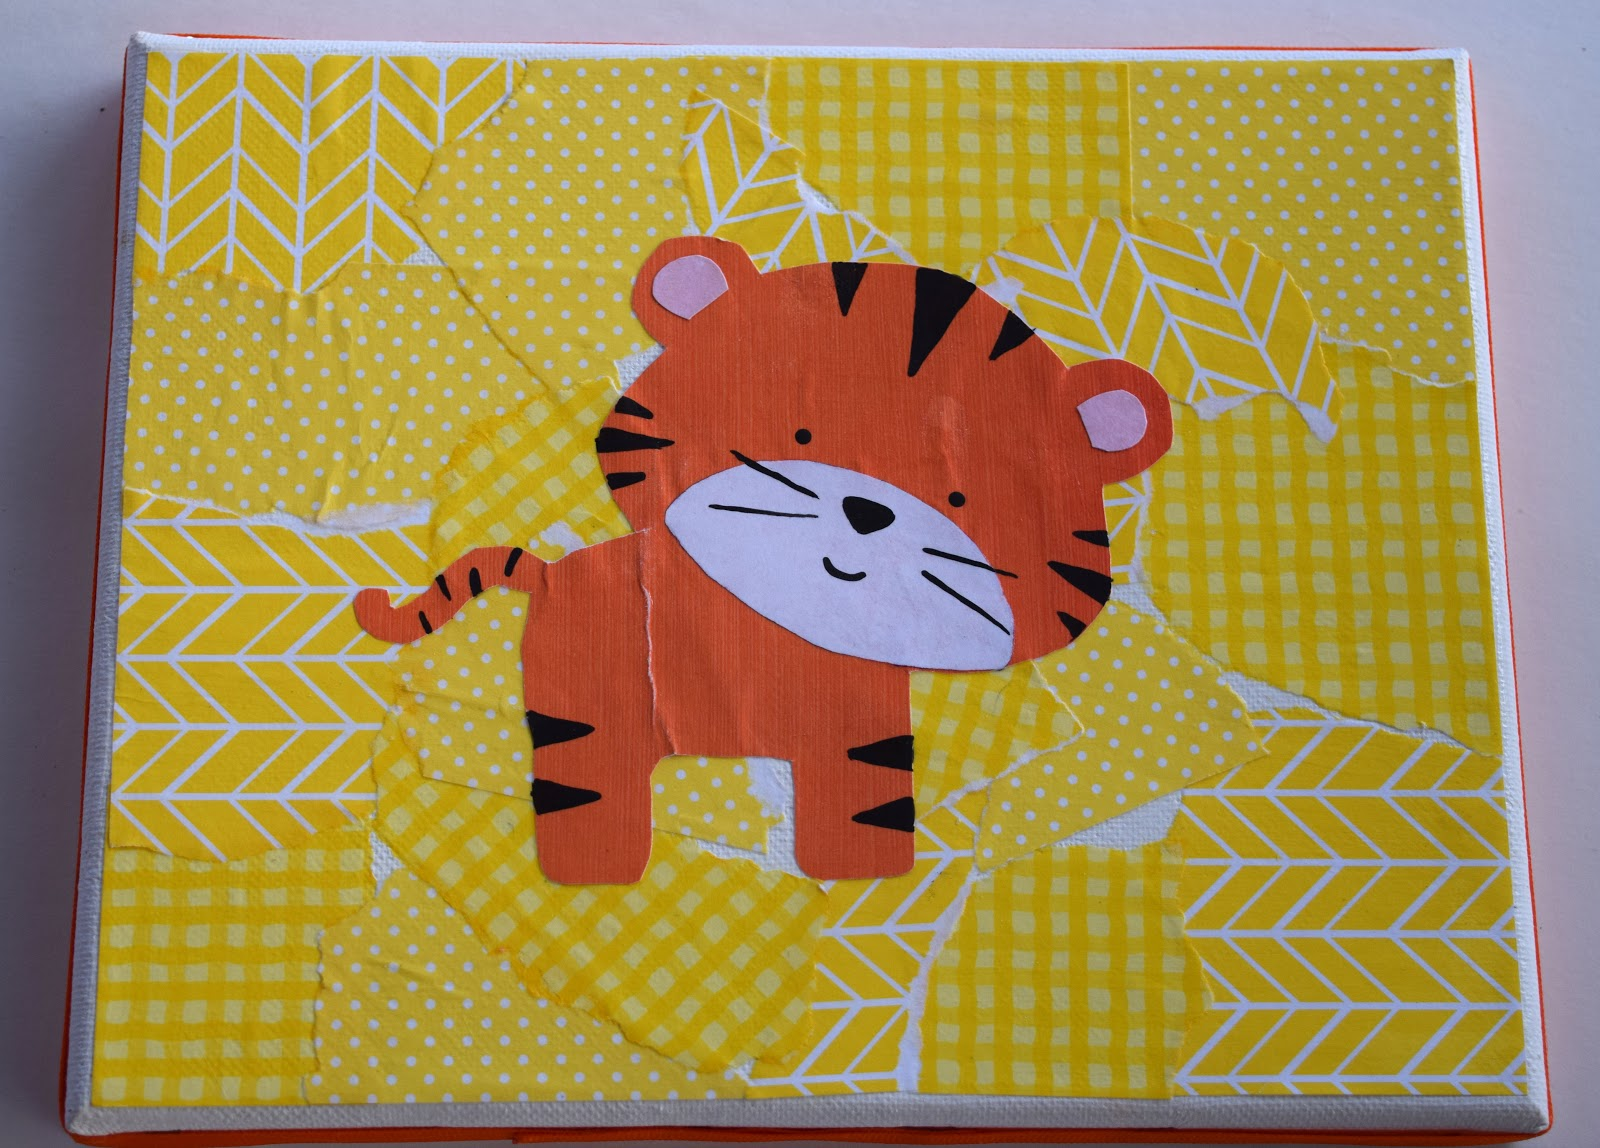 Scrapbook paper art ideas - We Again Used Mod Podge To Attach The Actual Hippo Black Buttons Were Hot Glued On For Eyes And Nostrils It Was Very Hard To Let Go Of The Hippo Canvas